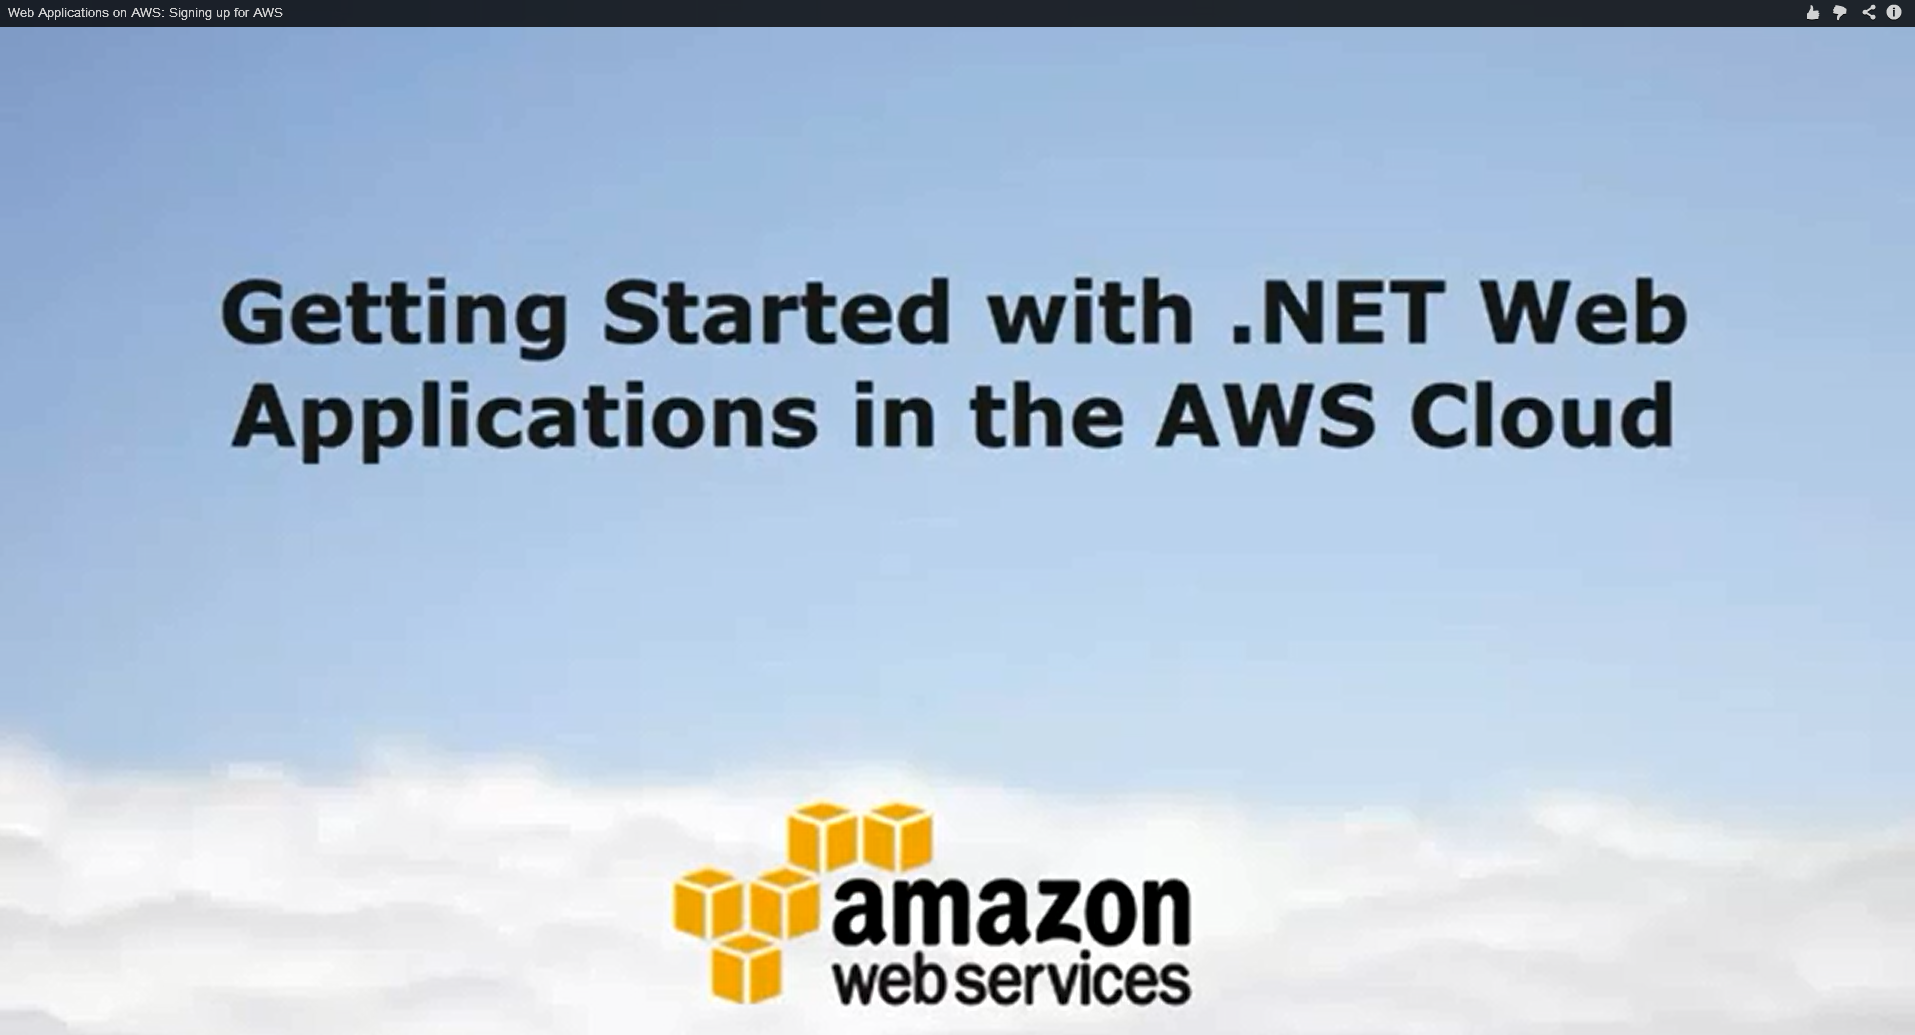 Gettingstarted_signing up for AWS